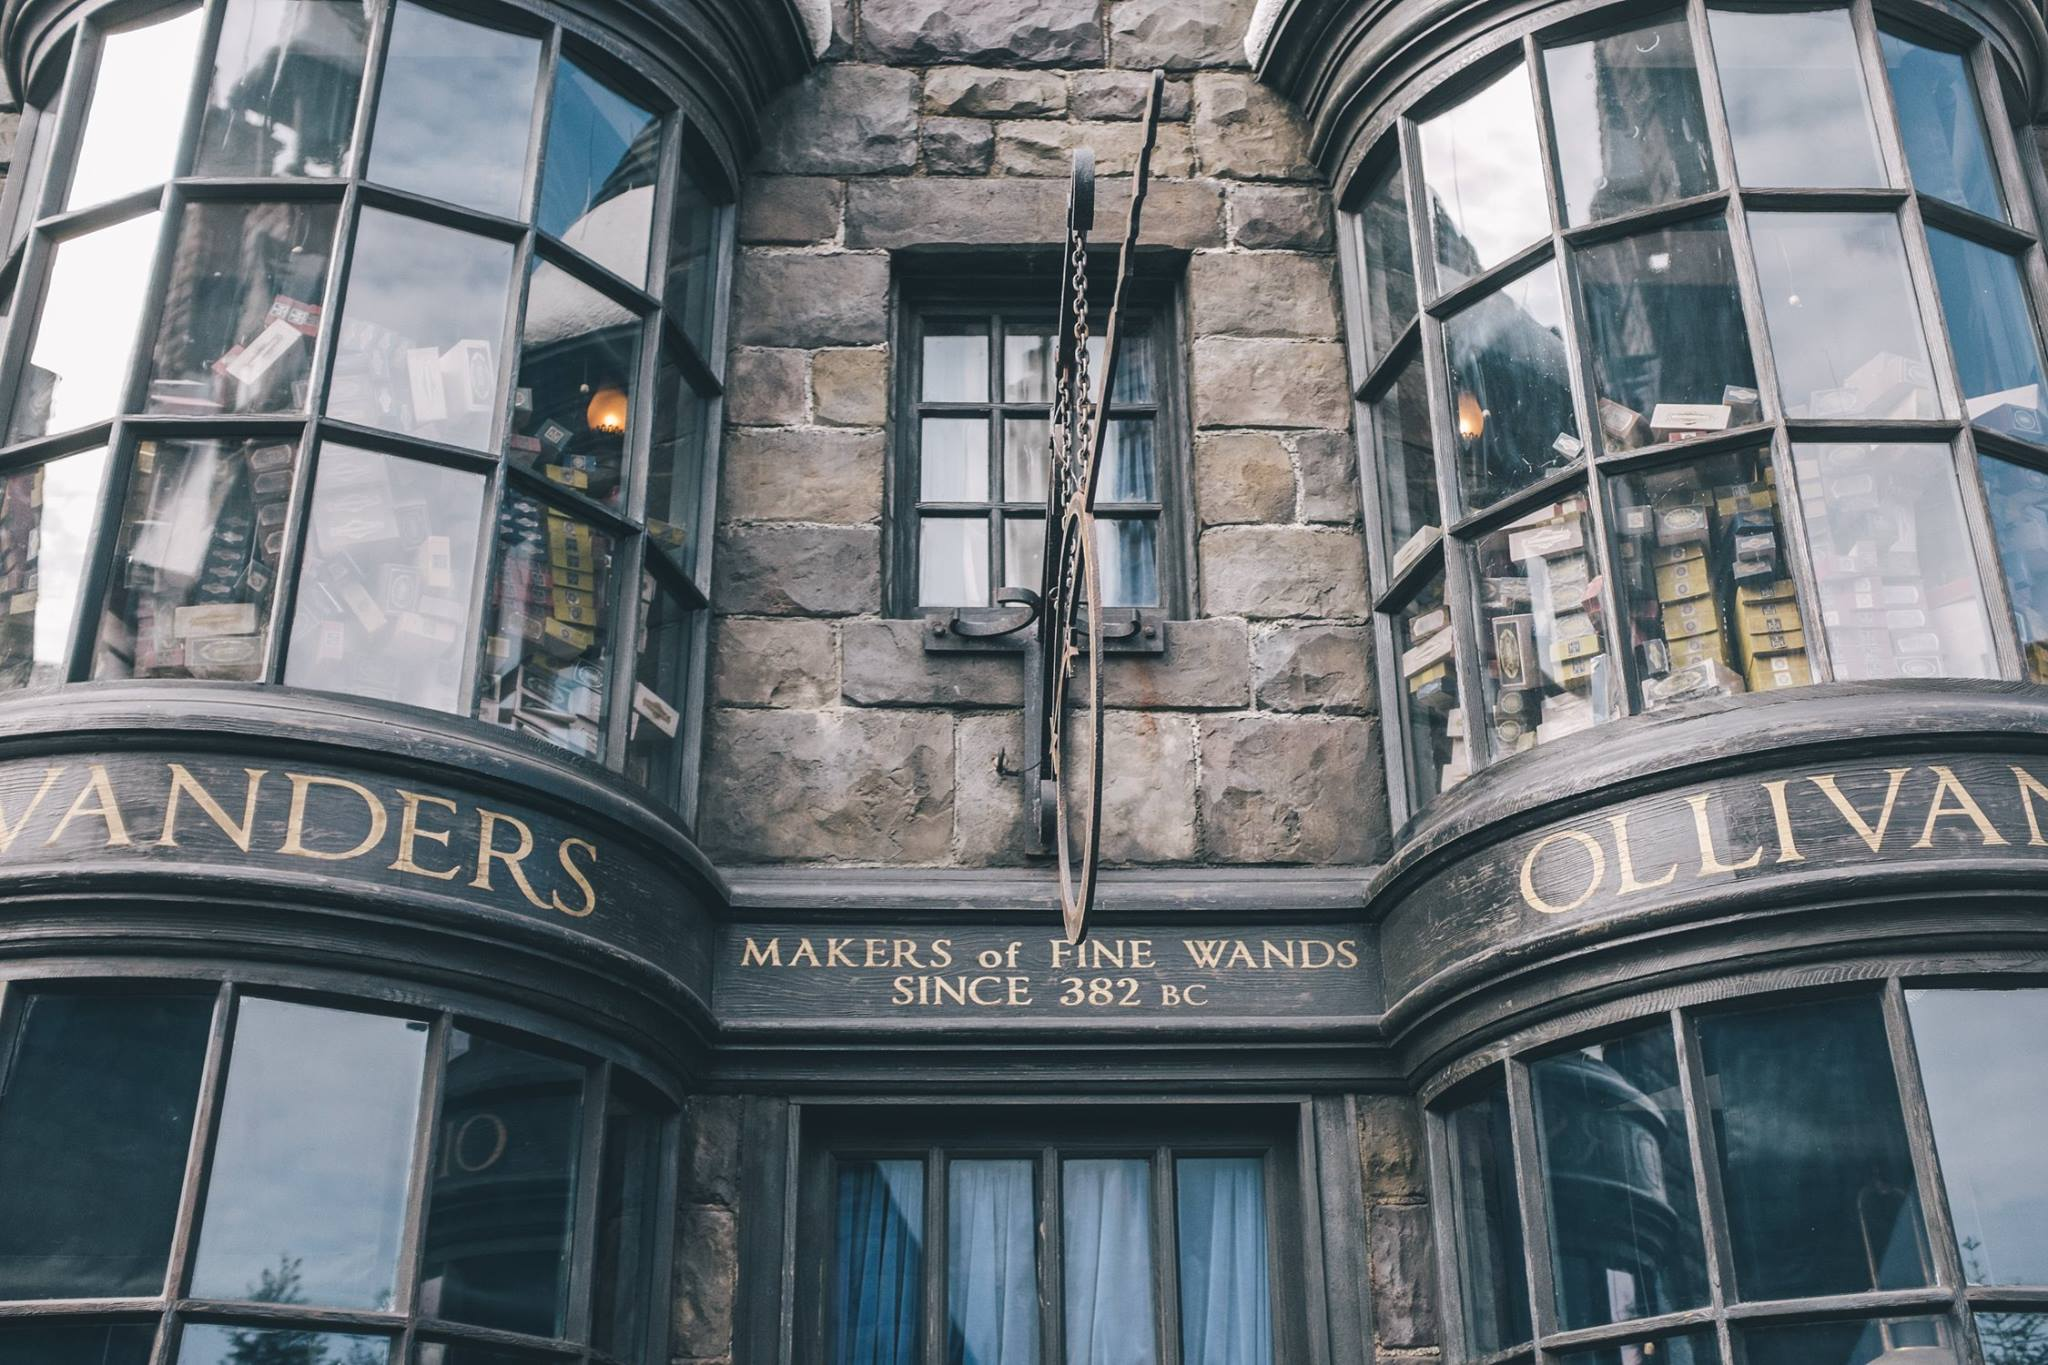 wizarding world of harry potter_maren-hald-bjorgum-19